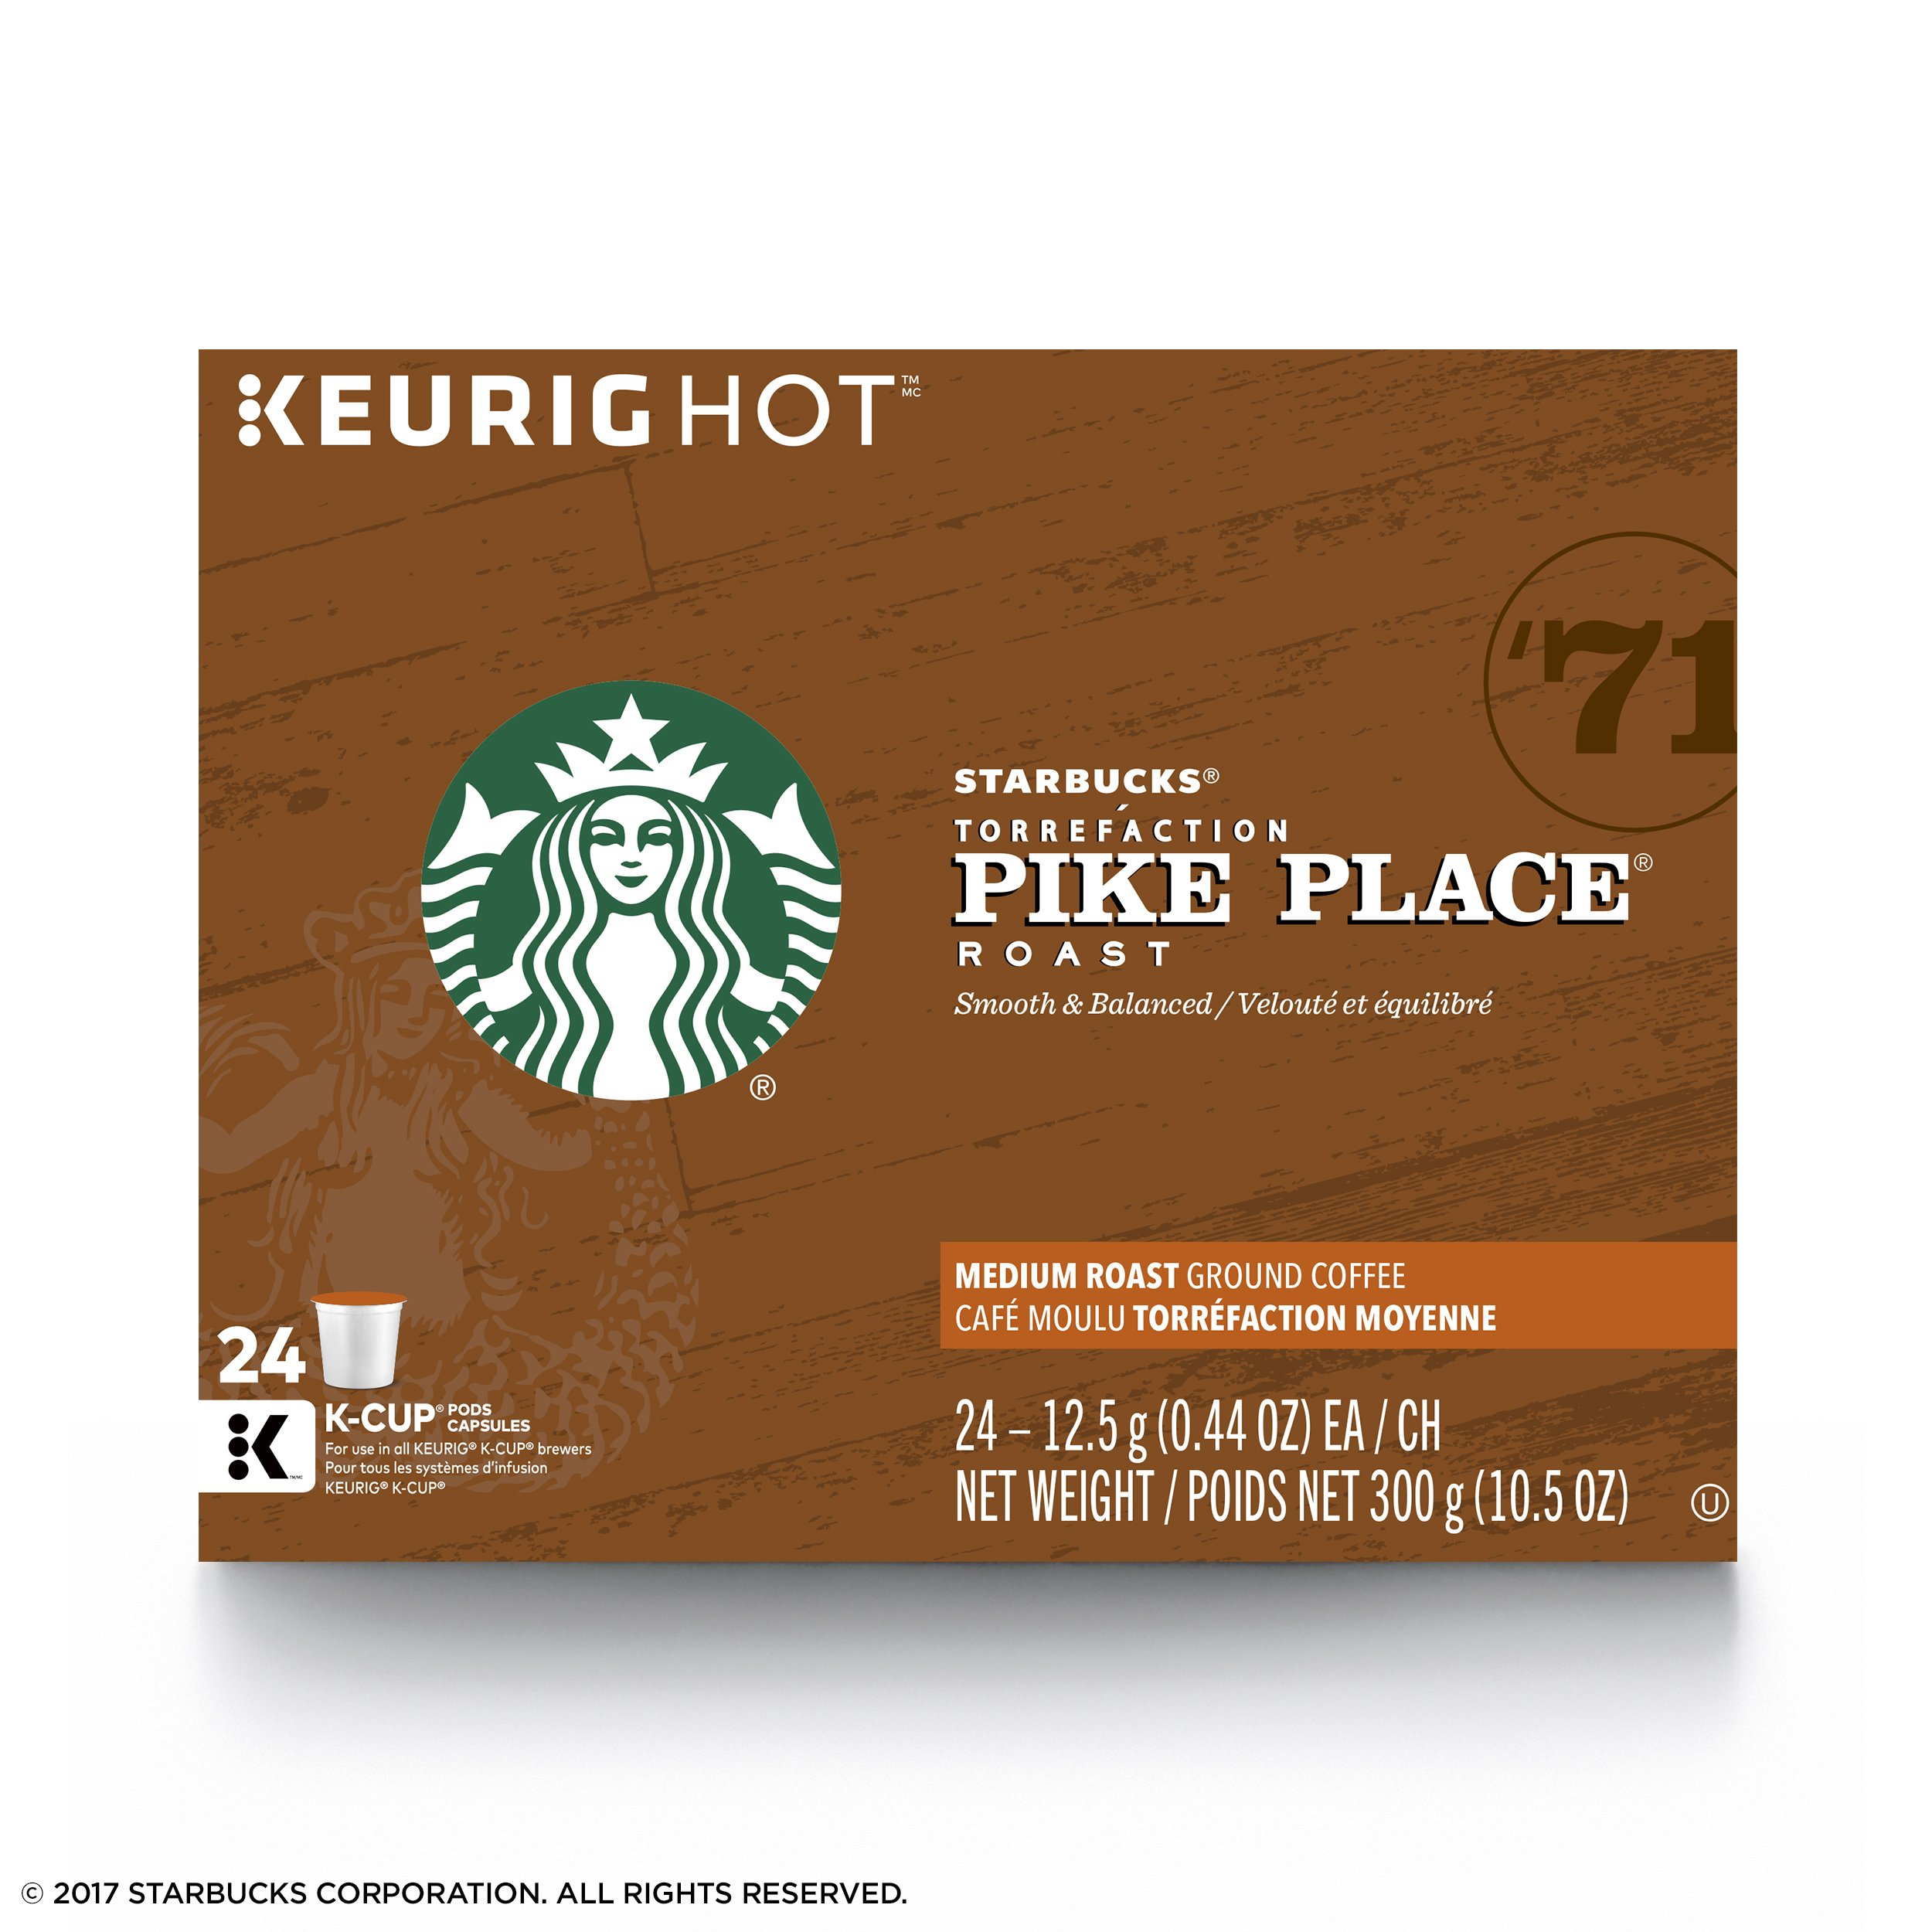 Starbucks Pike Place Roast Medium Roast Single Cup Coffee for Keurig Brewers, 4 boxes of 24 (96 total K-Cup pods) by Starbucks (Image #4)